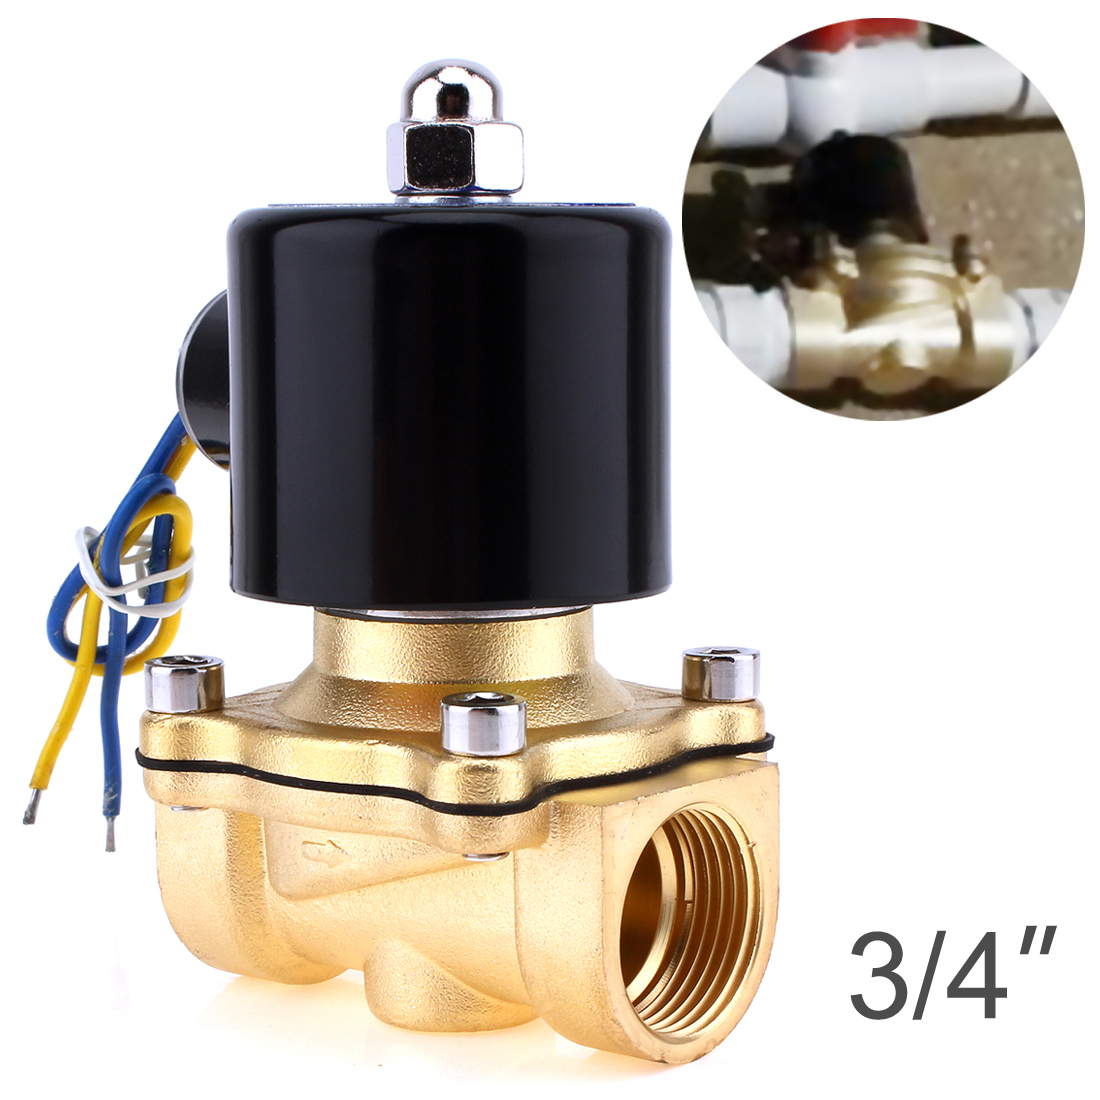 все цены на Solenoid Valve DC 12V 1/4'' 3/8'' 3/4'' NPT N/C Brass Normally Closed Electric Valve for Water Oil Air Diesel-Gas Fuels онлайн